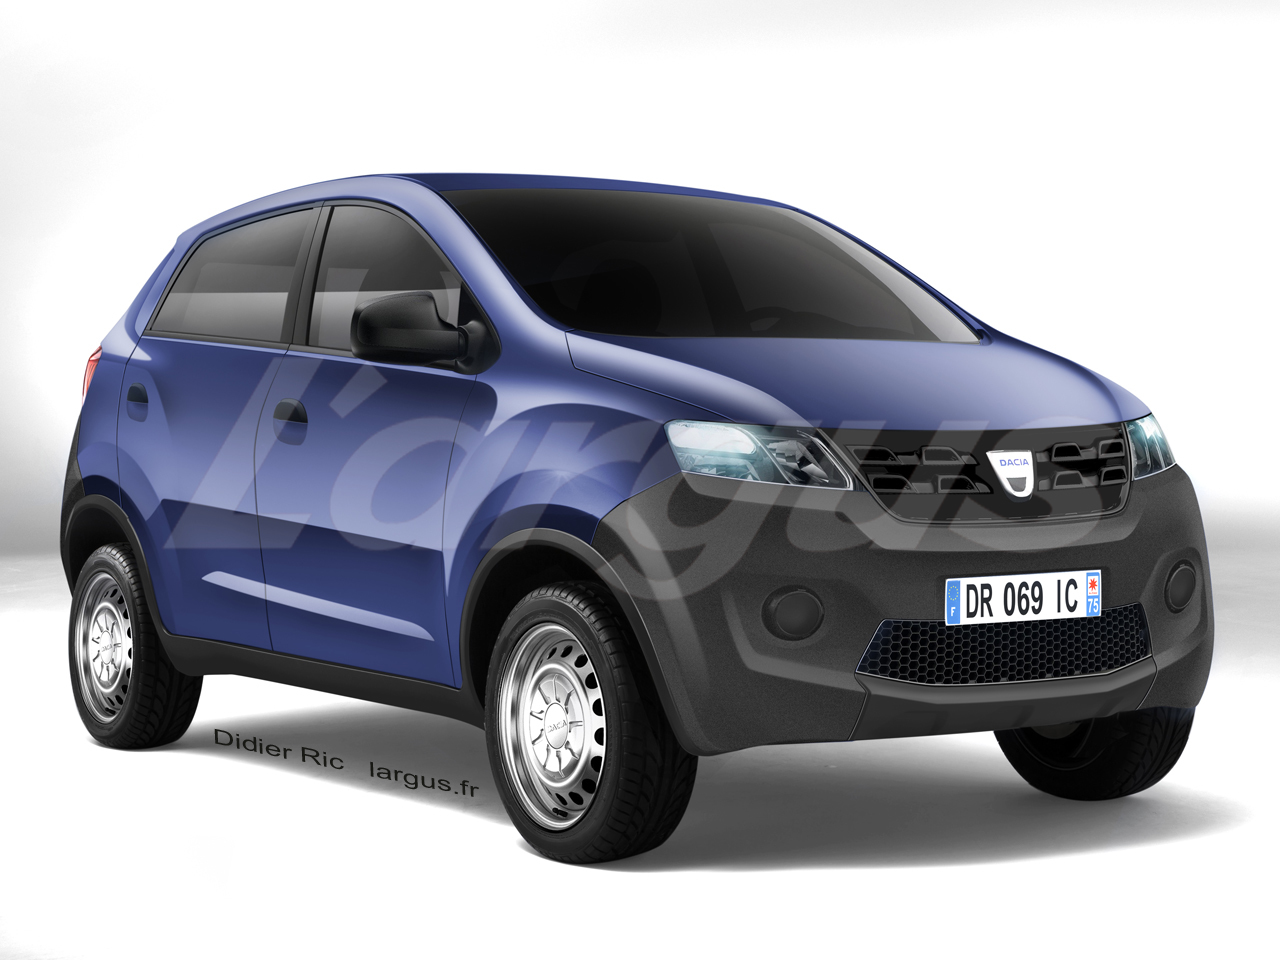 dacia kwid voici le nom de la future citadine dacia 5000 euros photo 2 l 39 argus. Black Bedroom Furniture Sets. Home Design Ideas